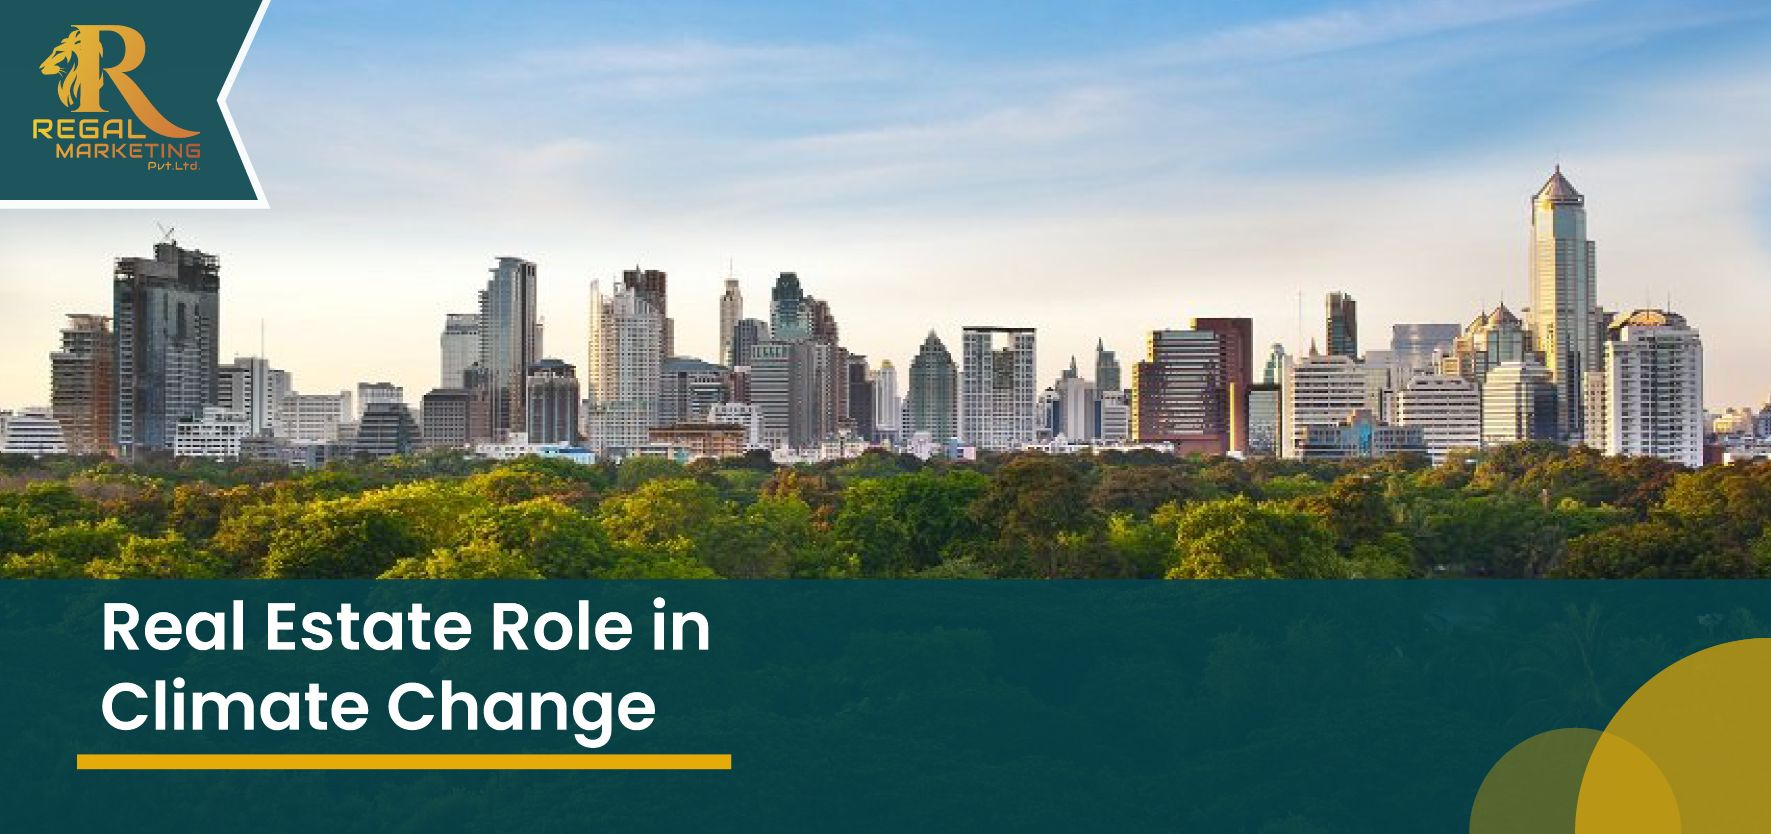 Real Estate Role in Climate Change